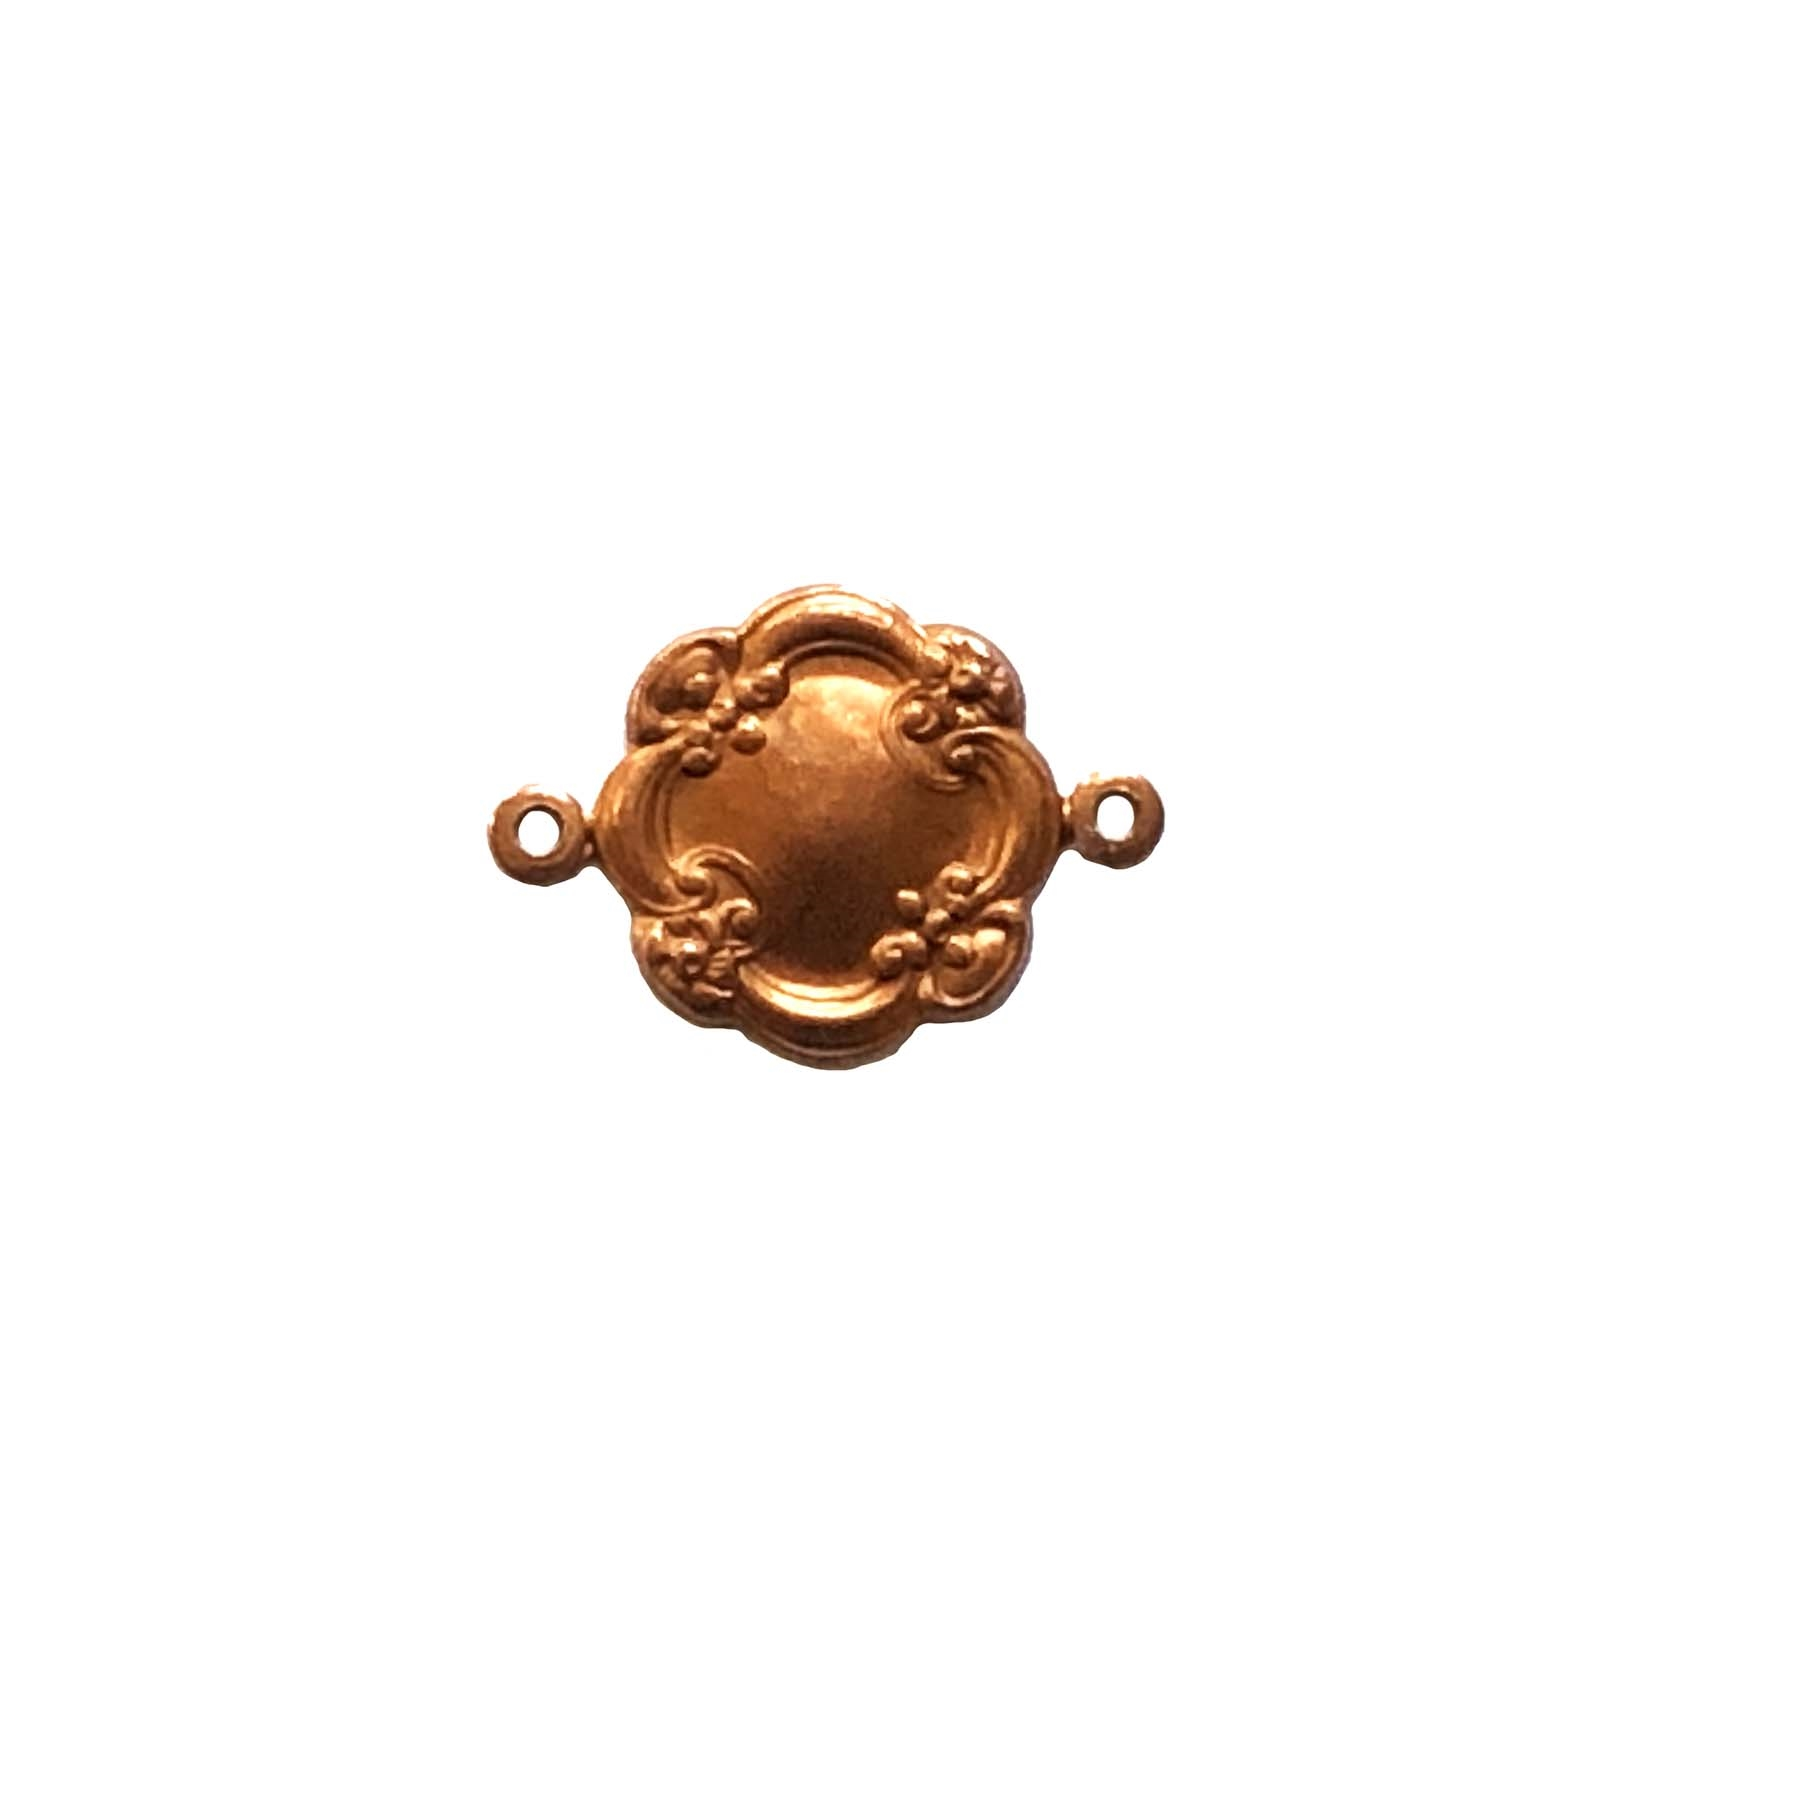 floral connector, gingerbread brass, connector, Victorian style, floral, US made, B'sue Boutiques, jewelry supplies, vintage supplies, jewelry making, jewelry connector, brass charms, floral charms, 14mm, brass stamping, floral style, 0615